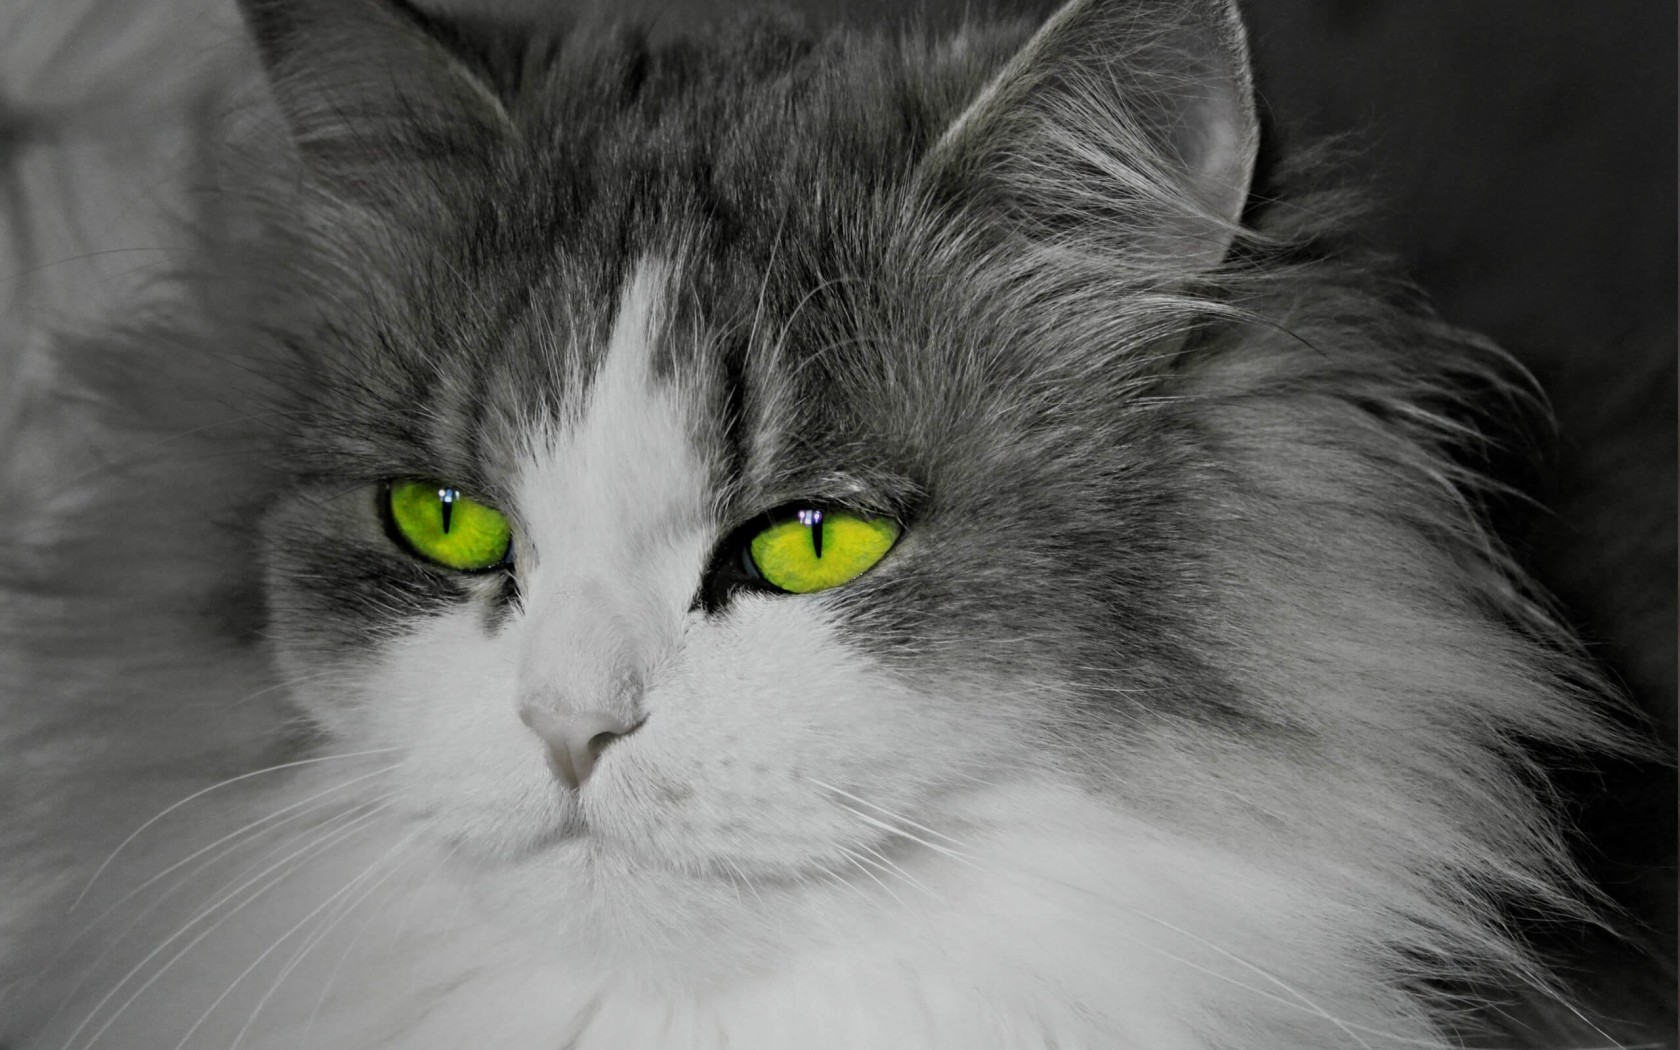 Cat With Stunningly Green Eyes Wallpaper for Desktop 1680x1050